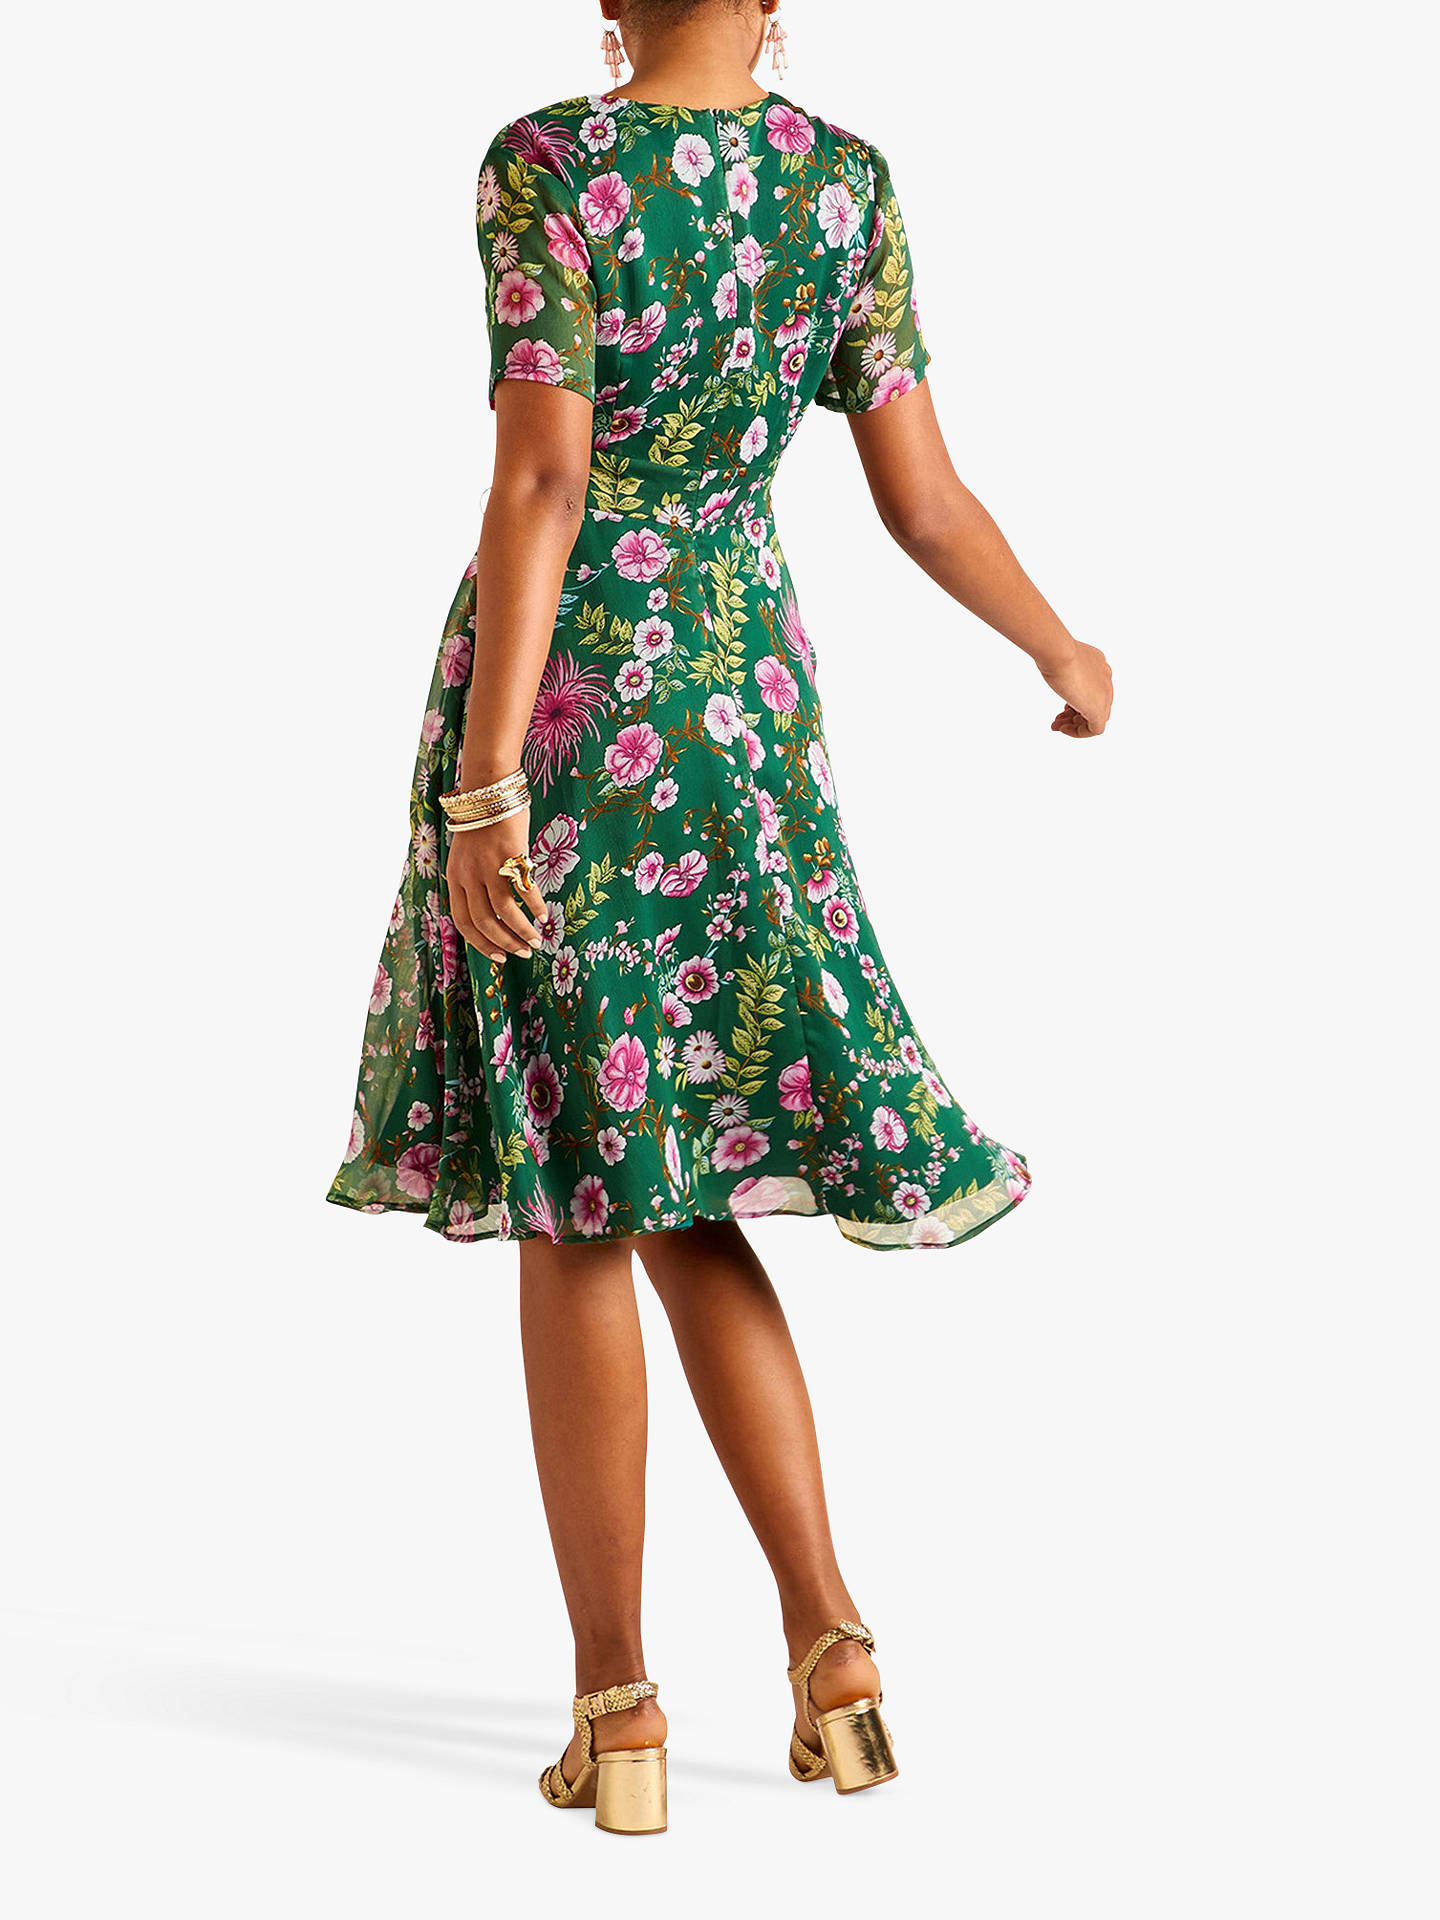 322a624dd71 ... Buy Yumi Floral Tie Waist Tea Dress